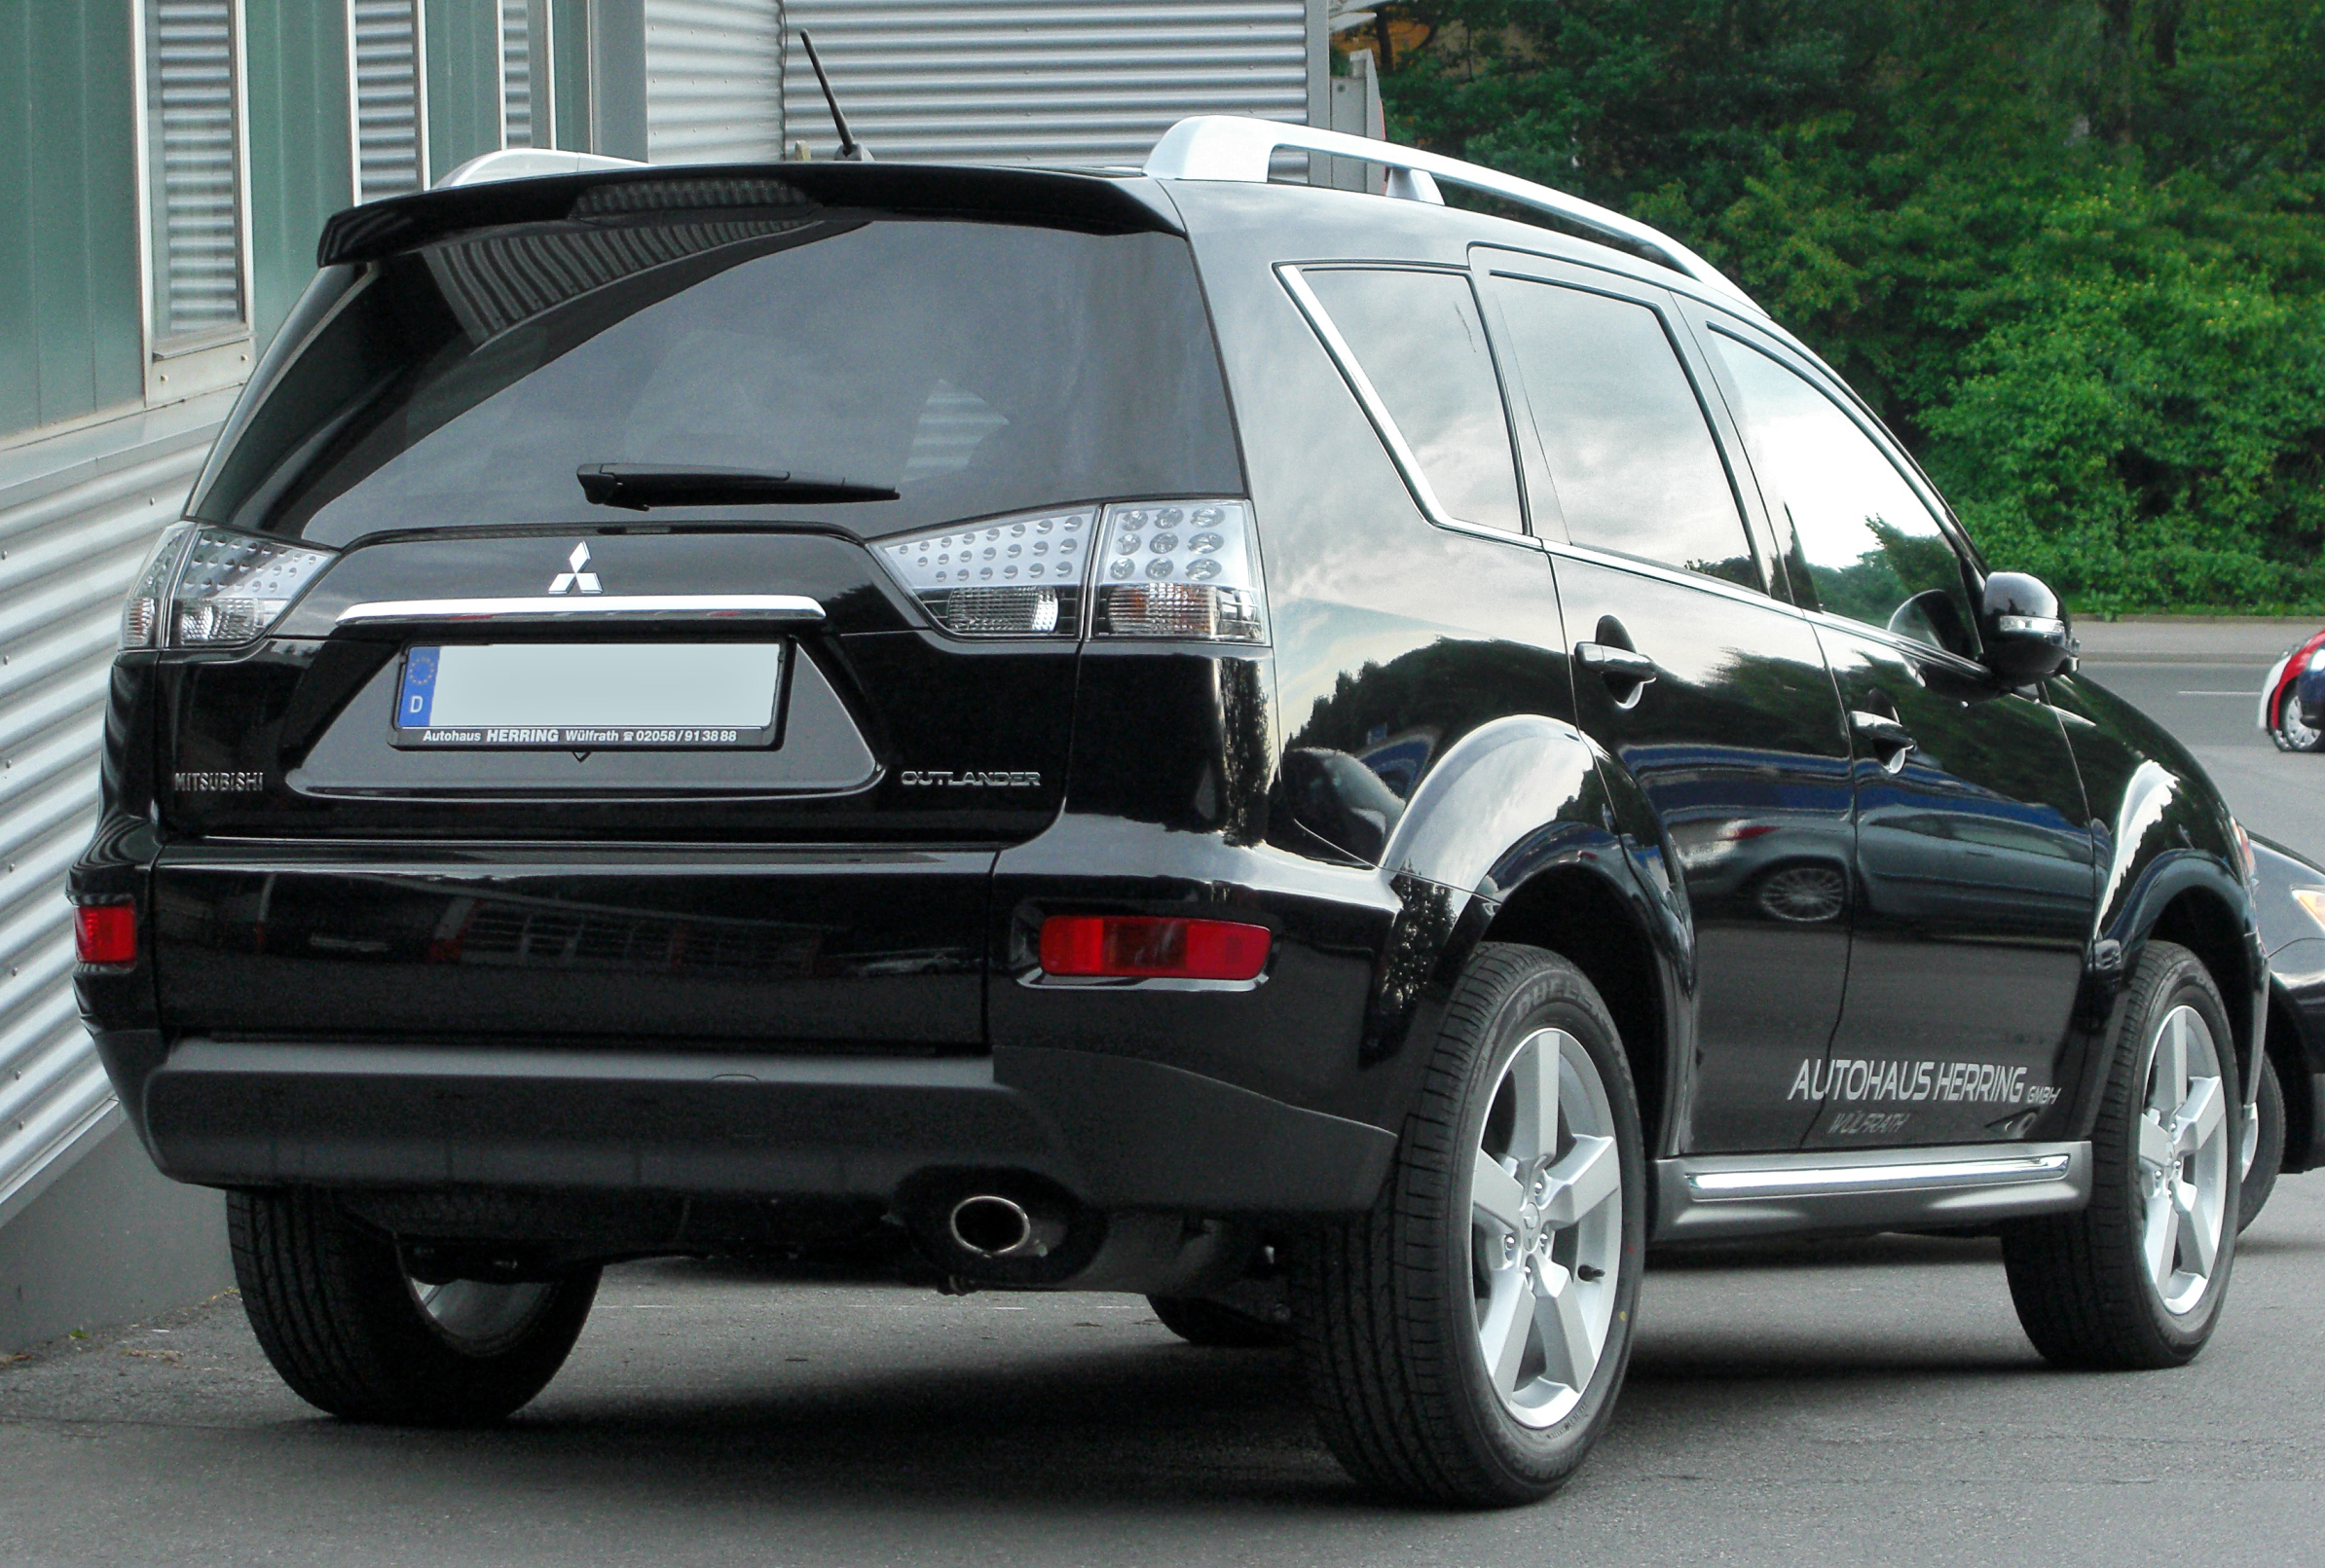 File:Mitsubishi Outlander II Facelift rear 20100606.jpg ...